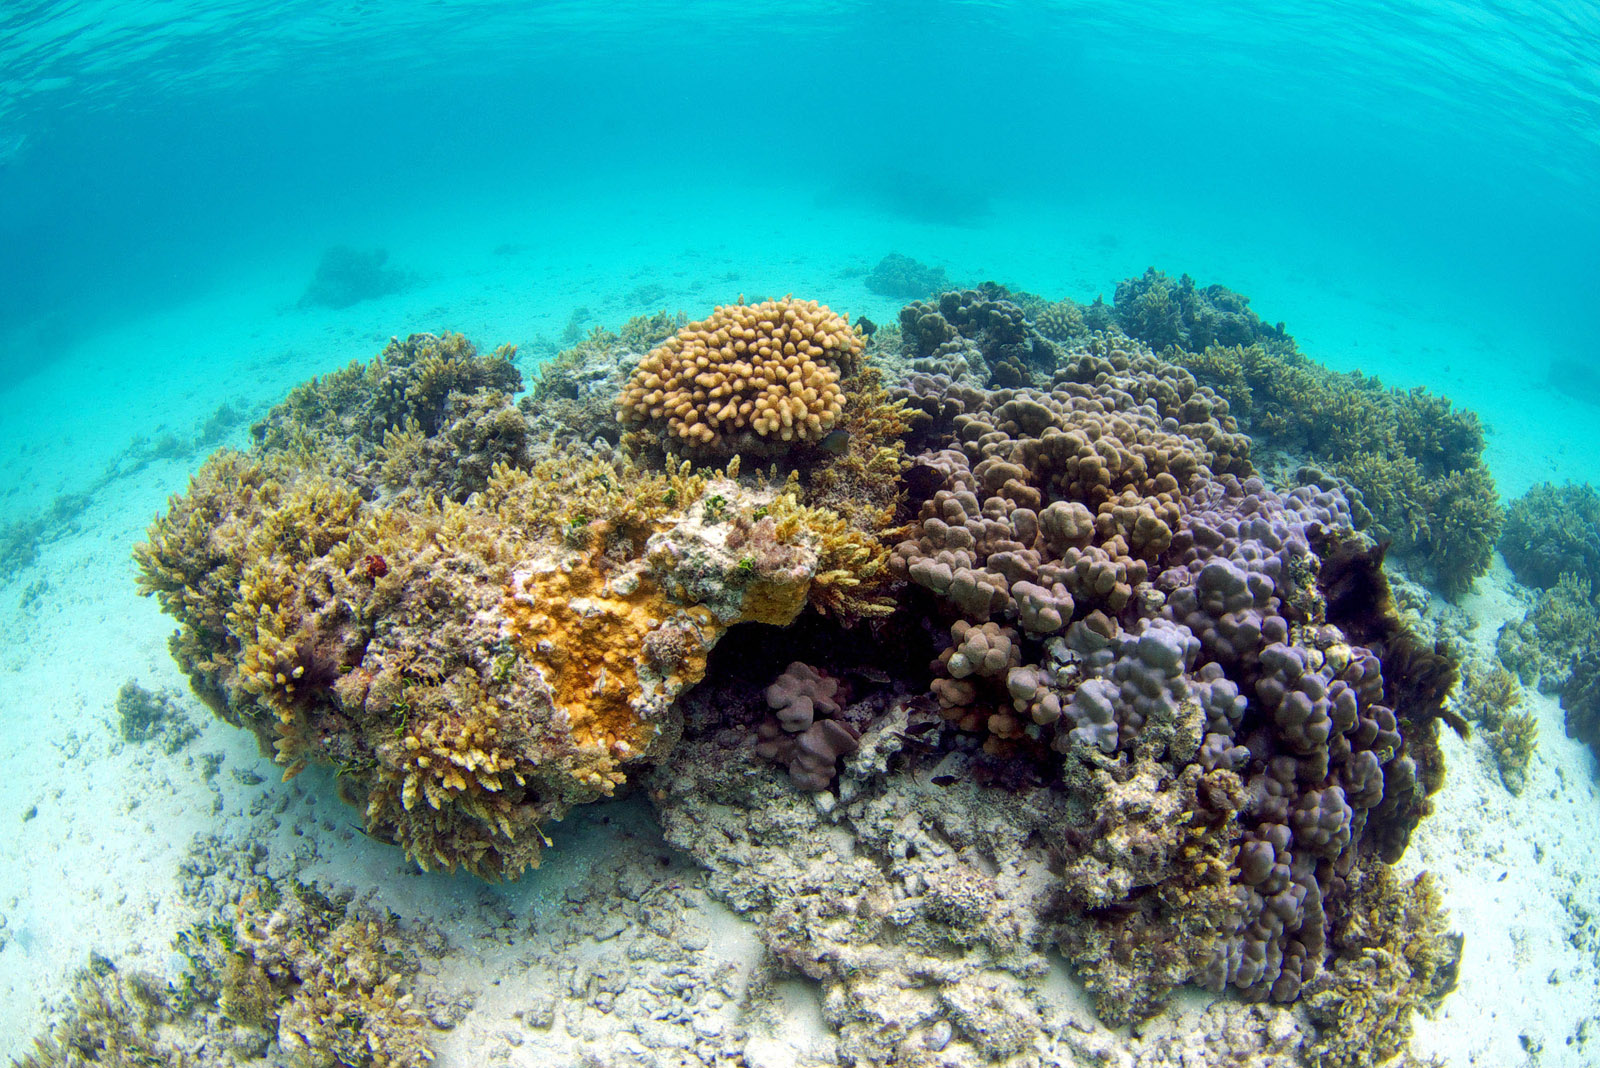 Study: Some sunscreens could be killing coral reefs